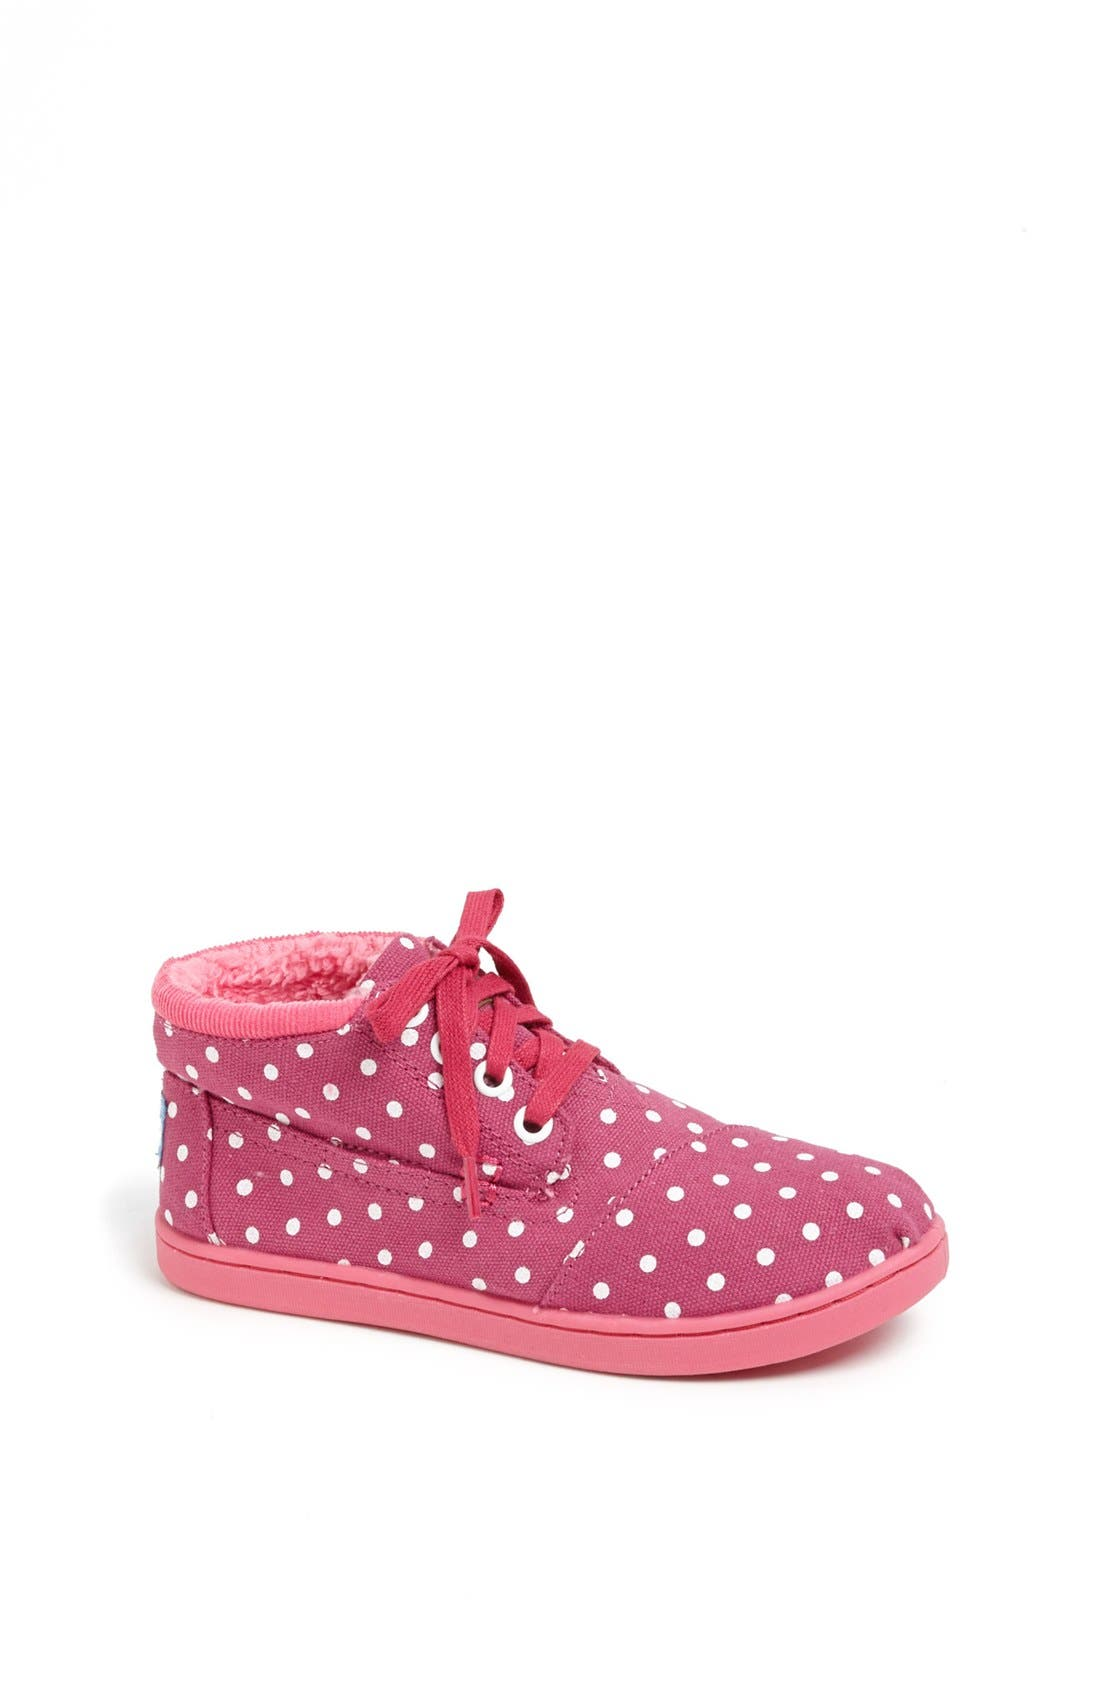 Alternate Image 1 Selected - TOMS 'Botas - Youth' High Top Sneaker (Toddler, Little Kid & Big Kid)